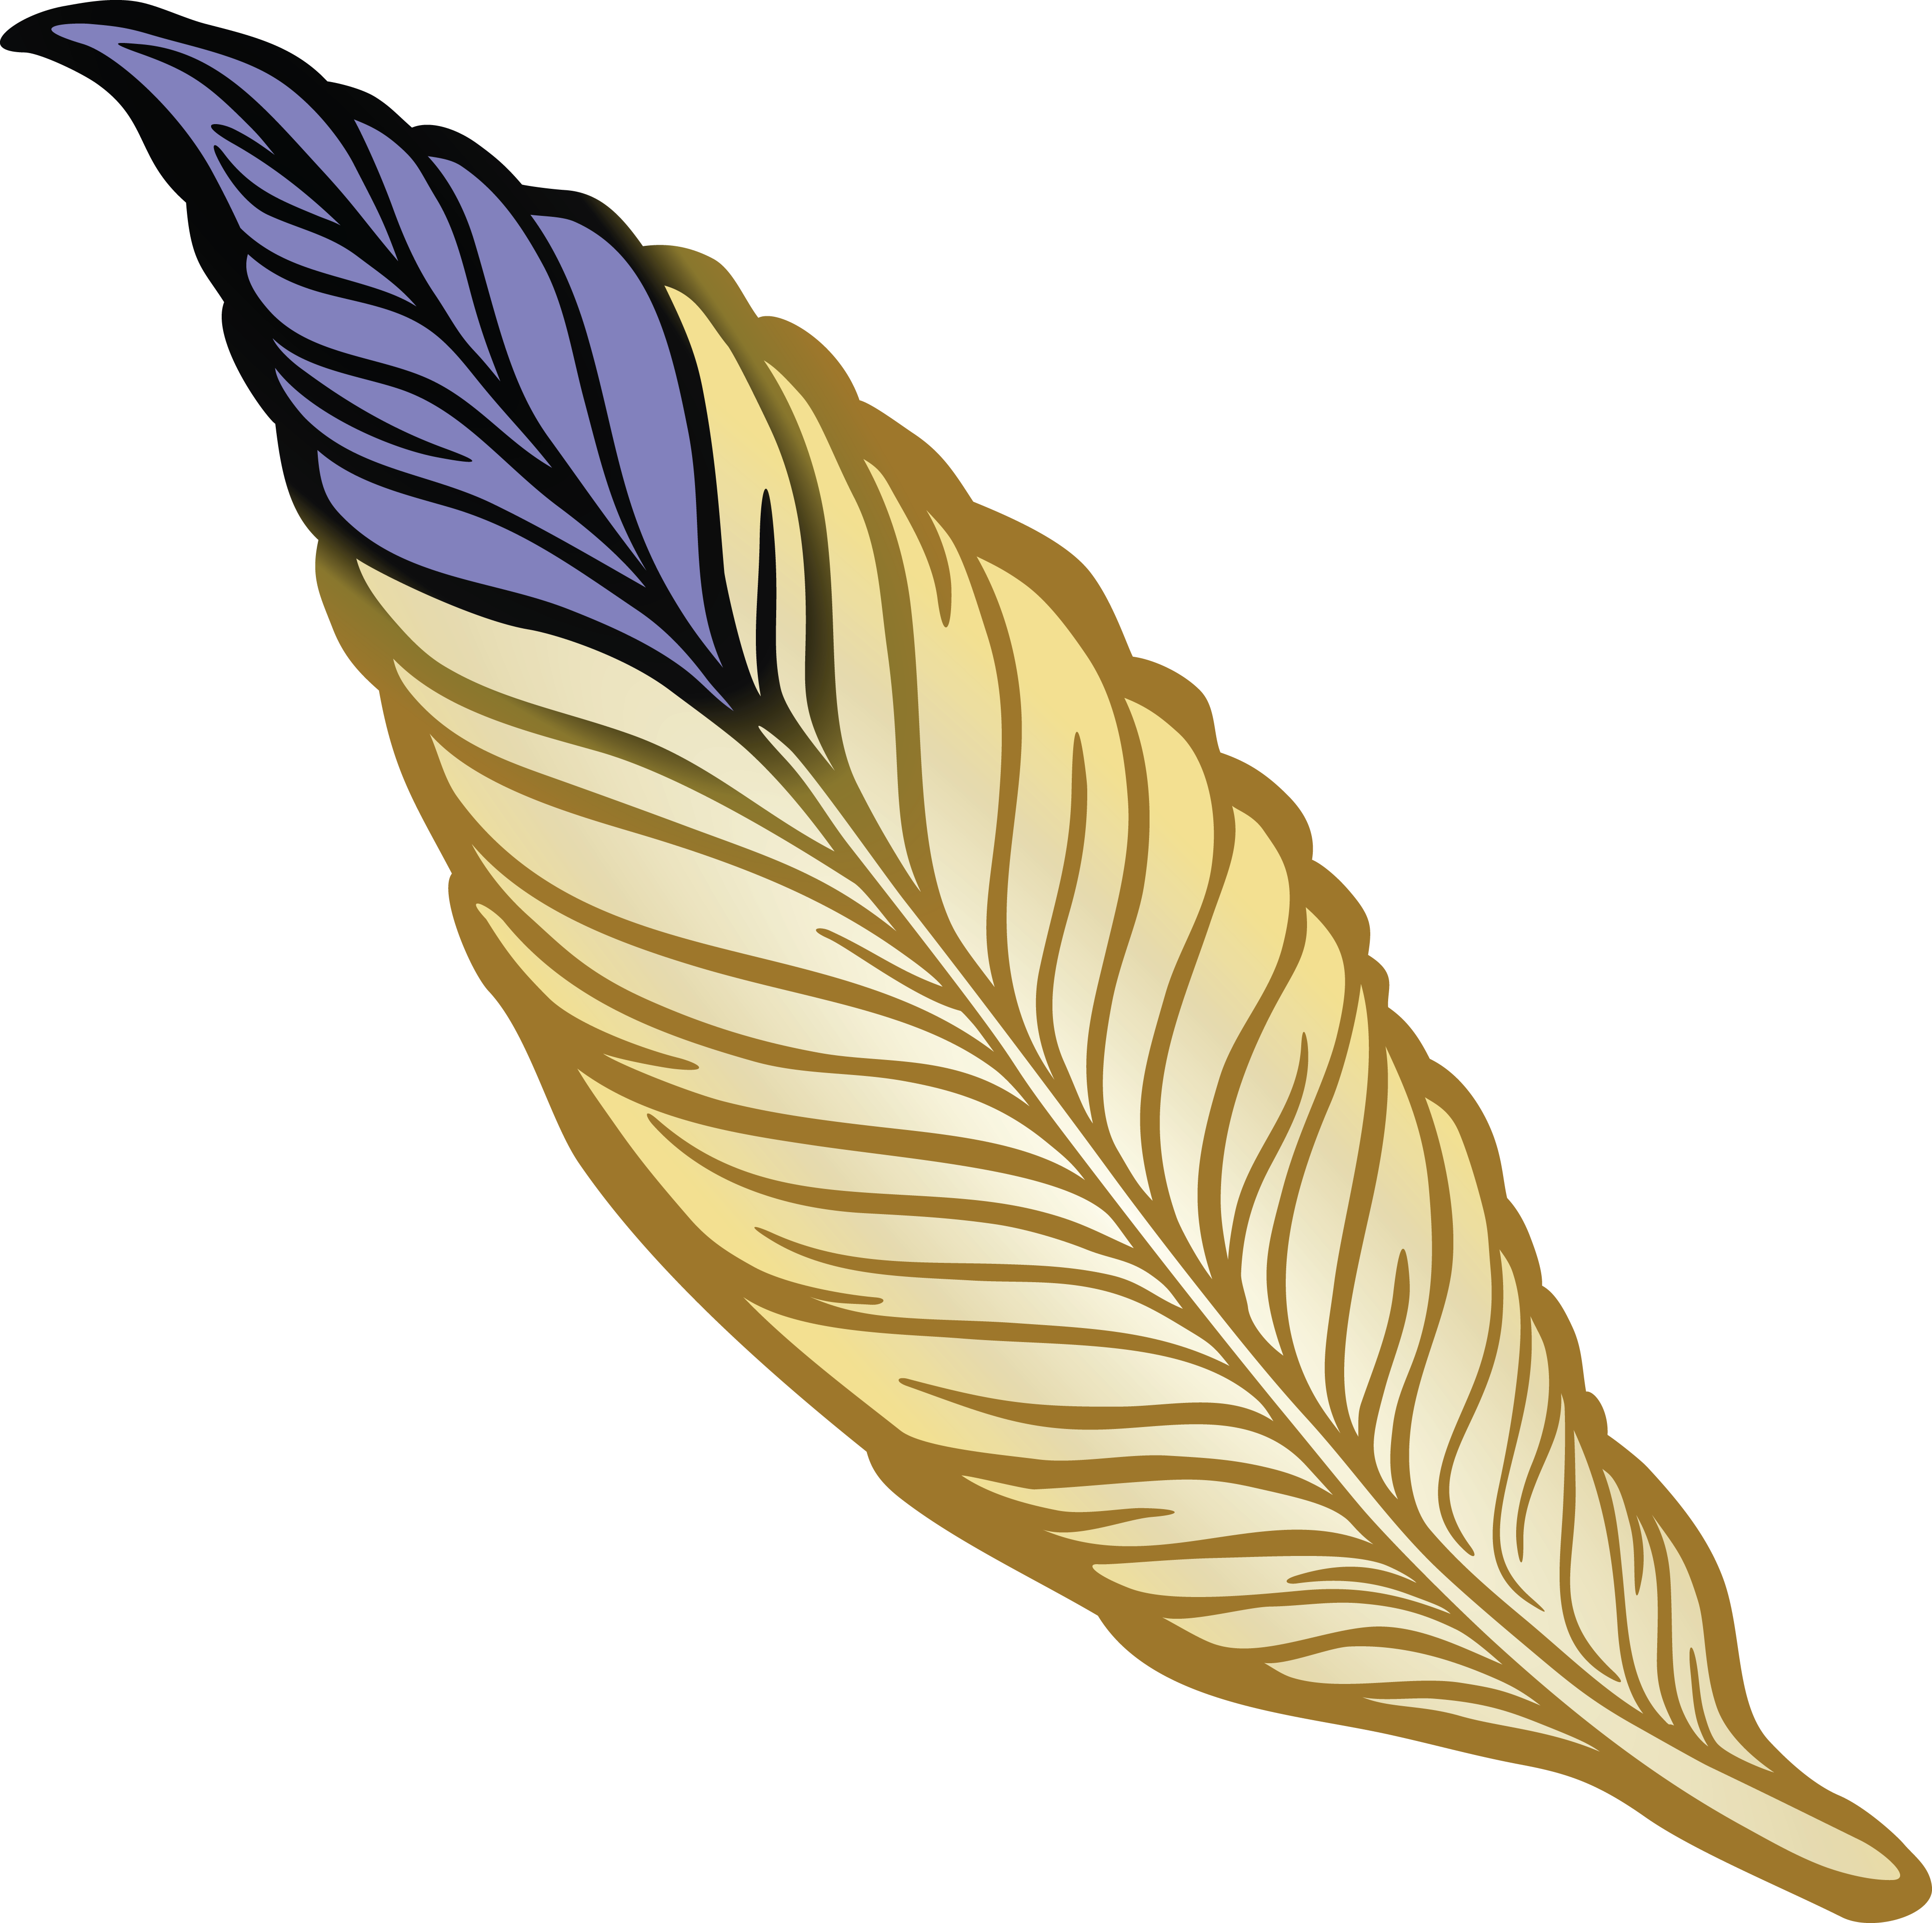 Feather clipart creative.  free of a